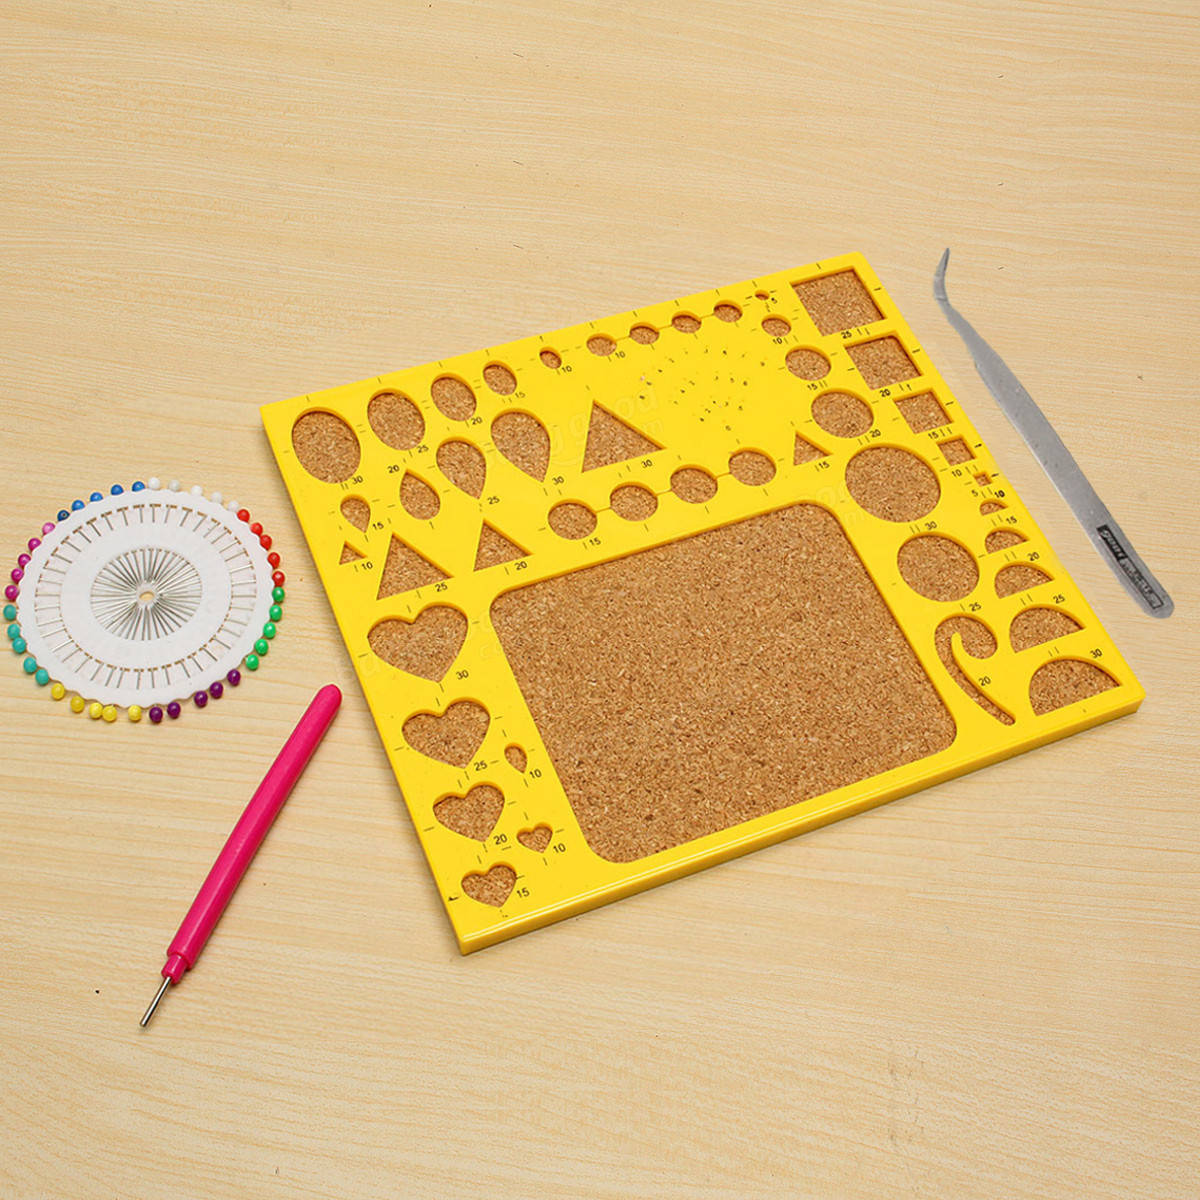 Creations Paper Quilling Kit Tweezer Board Needles Slotted